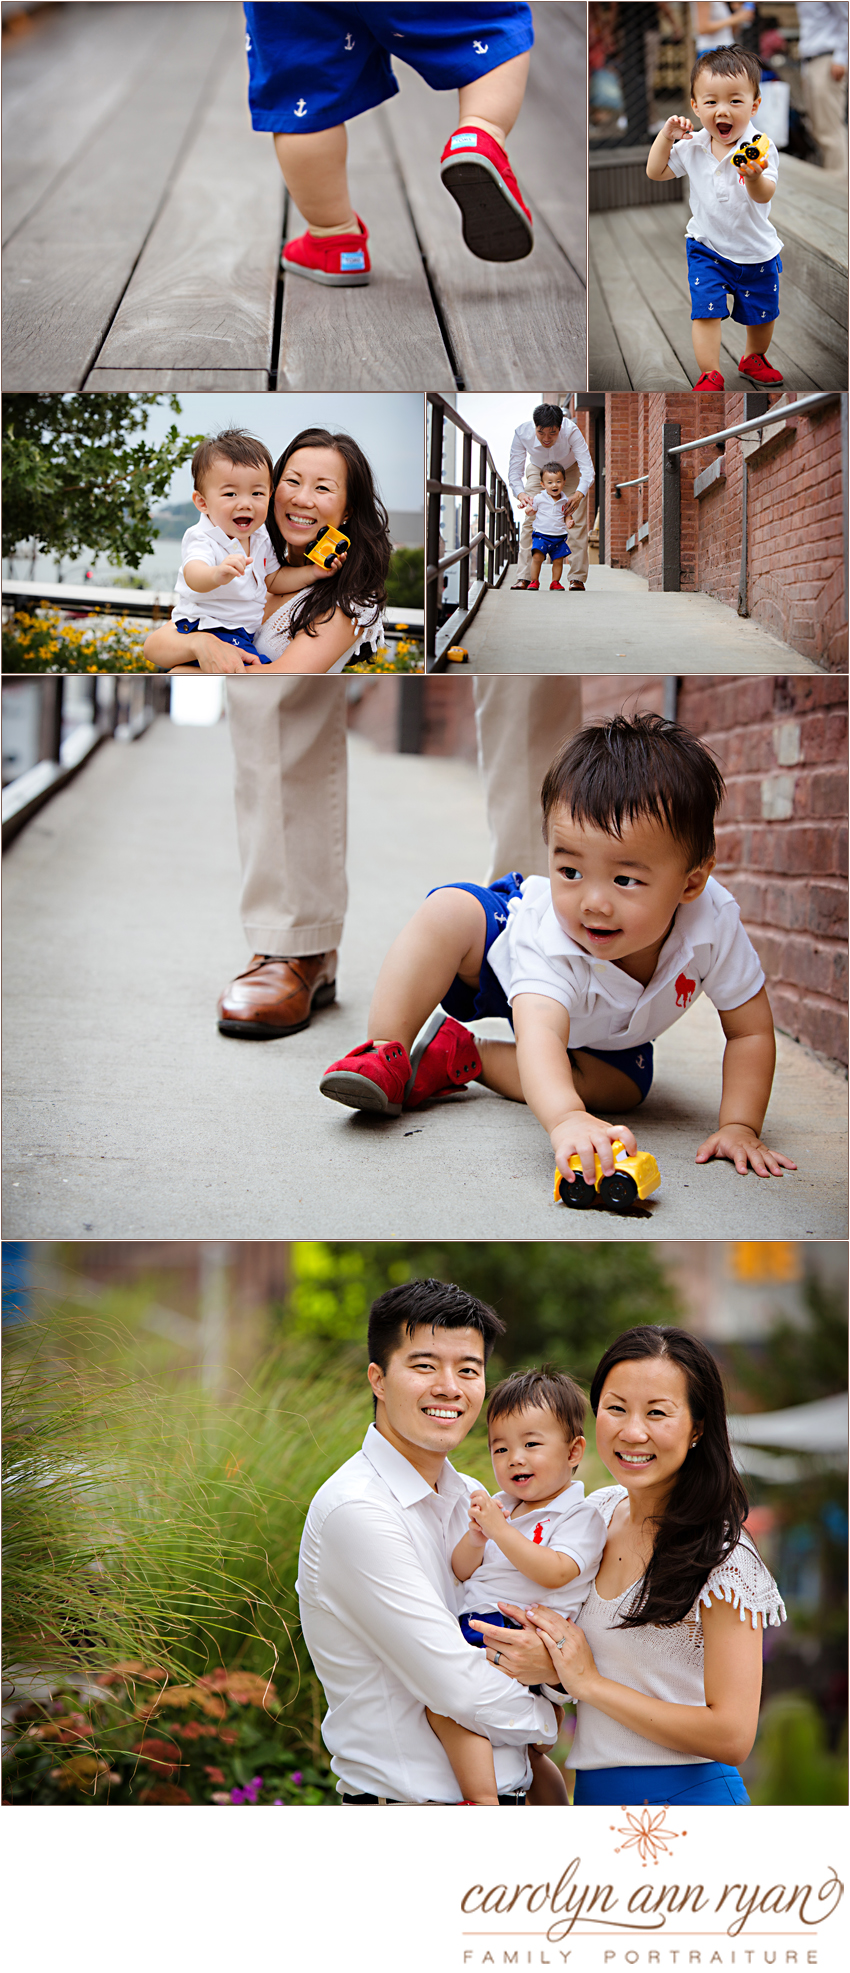 Charlotte Metro Family Photographer Carolyn Ann Ryan shares cute family portraits